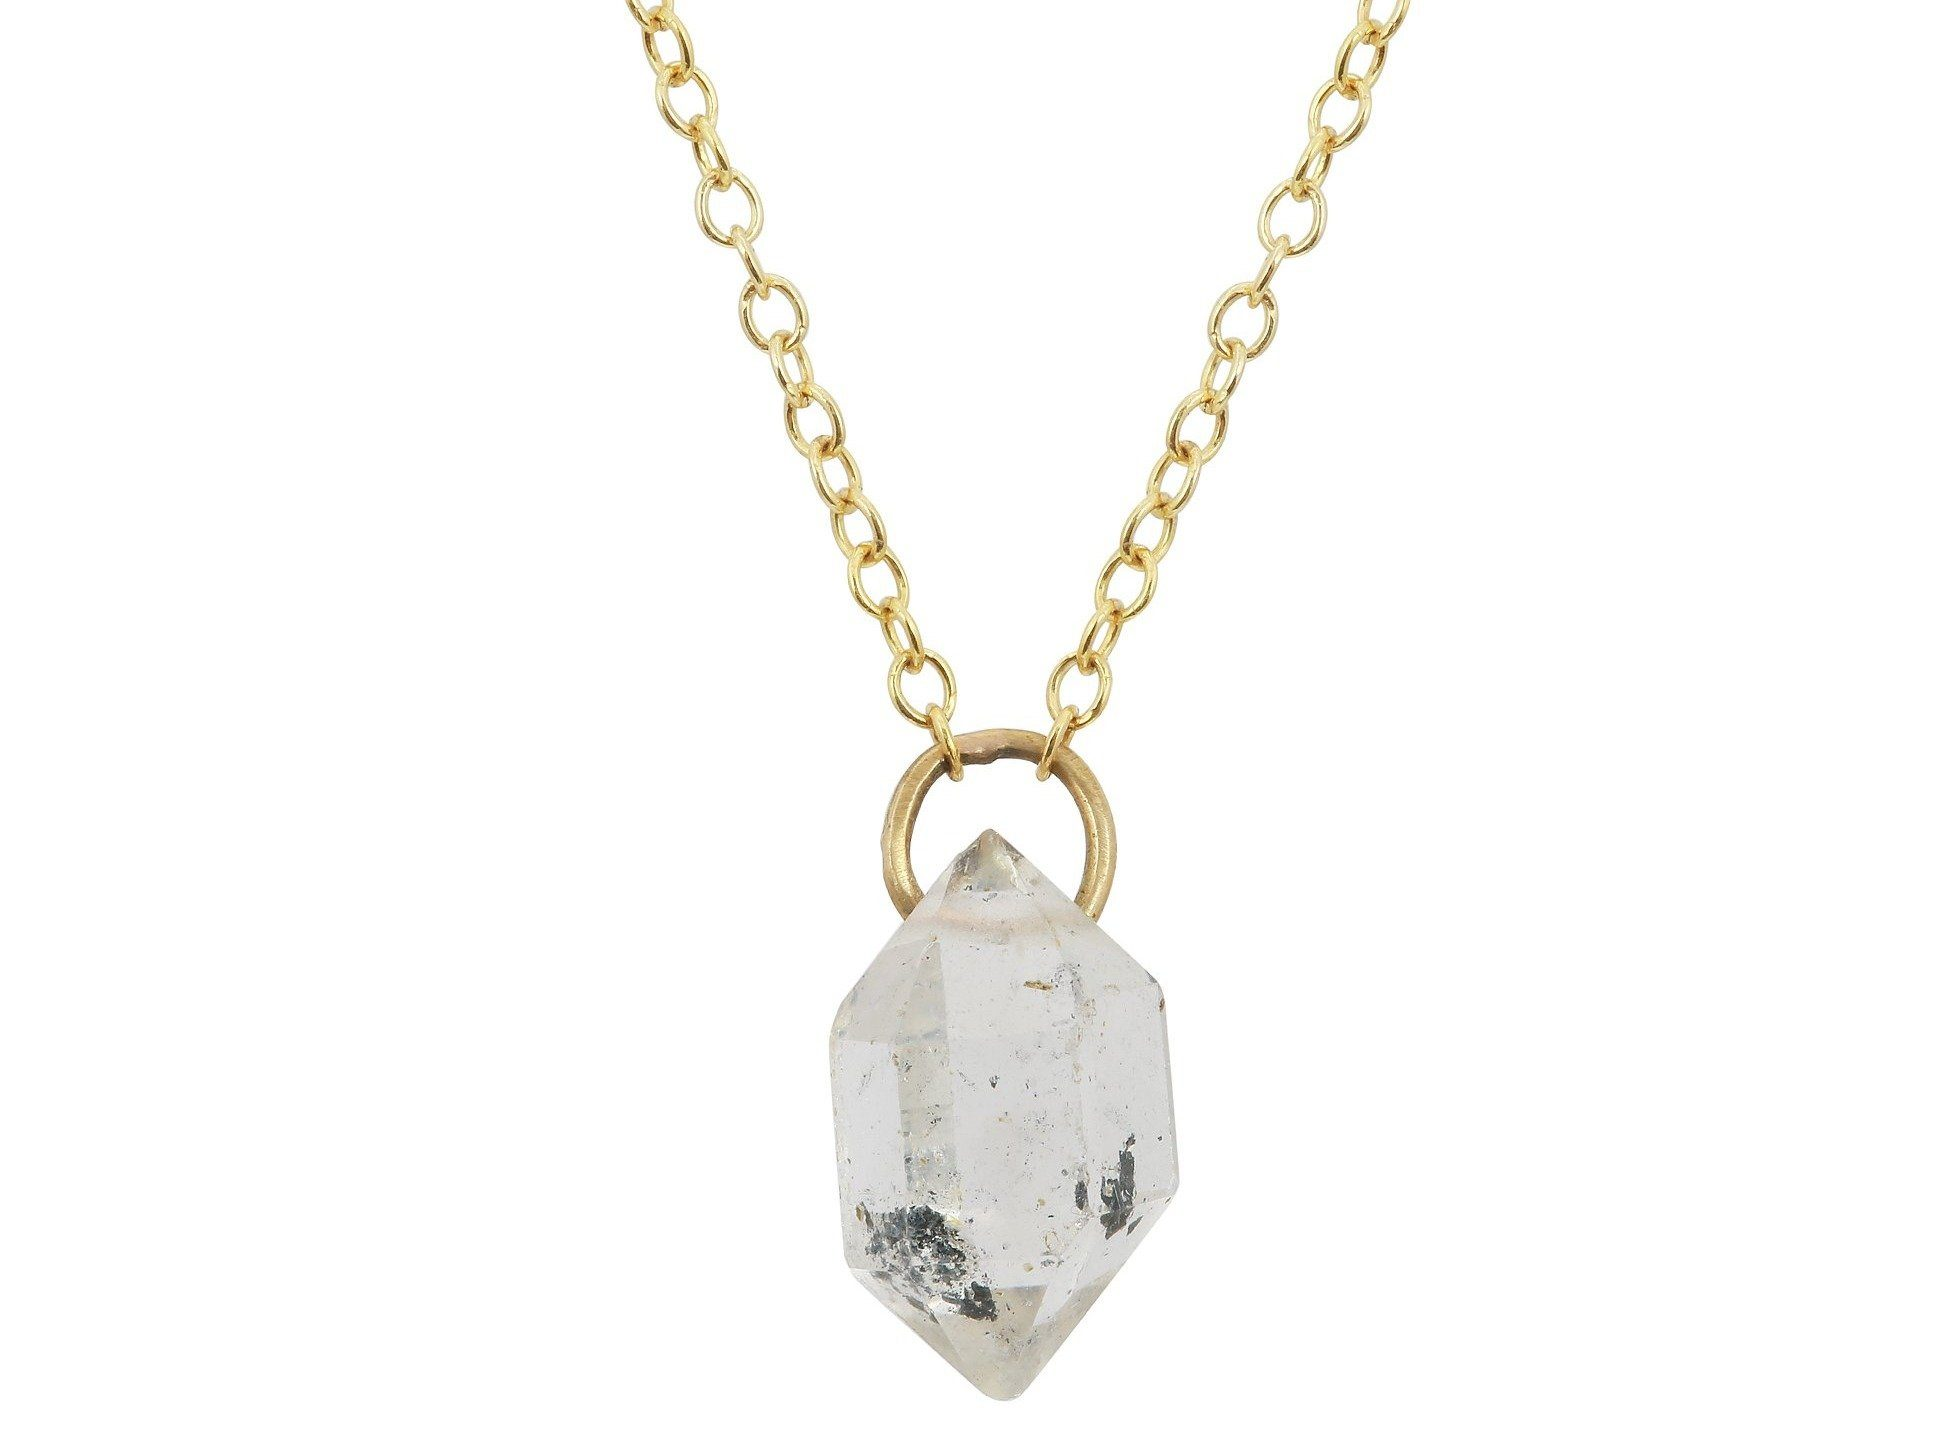 Tibetan Quartz crystal necklace - Amanda K Lockrow